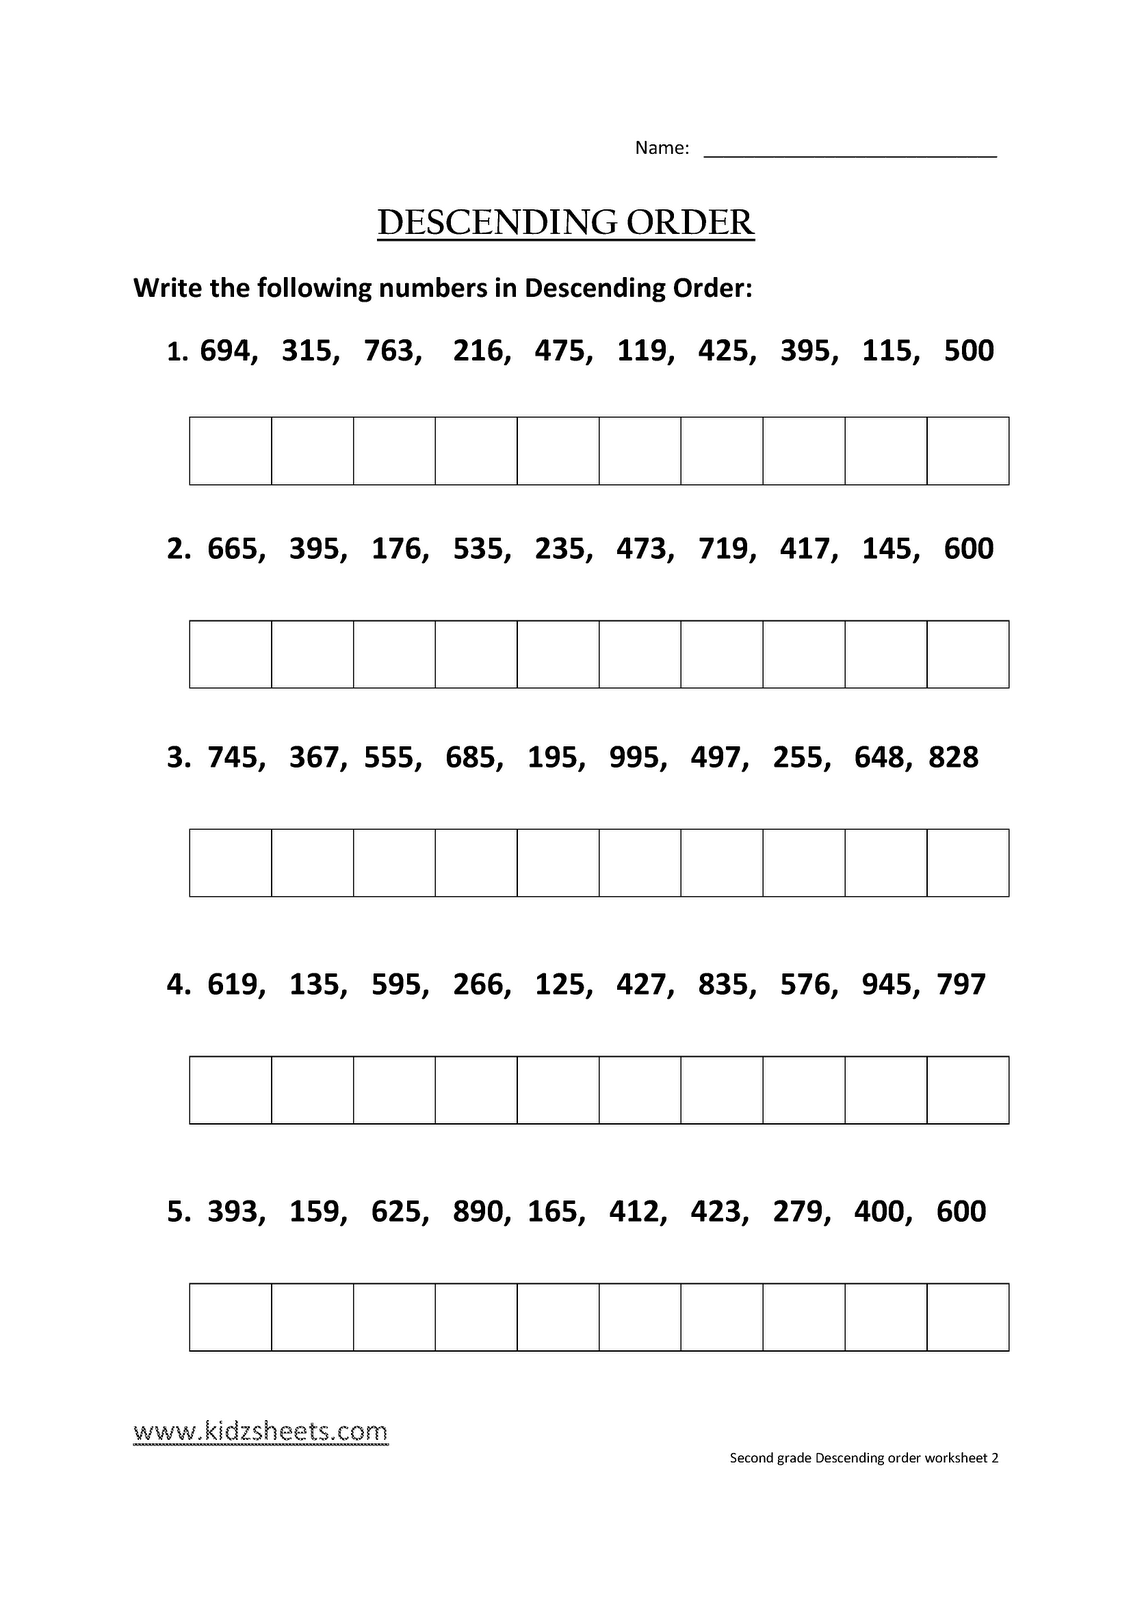 Kidz Worksheets Second Grade Descending Order Worksheet2